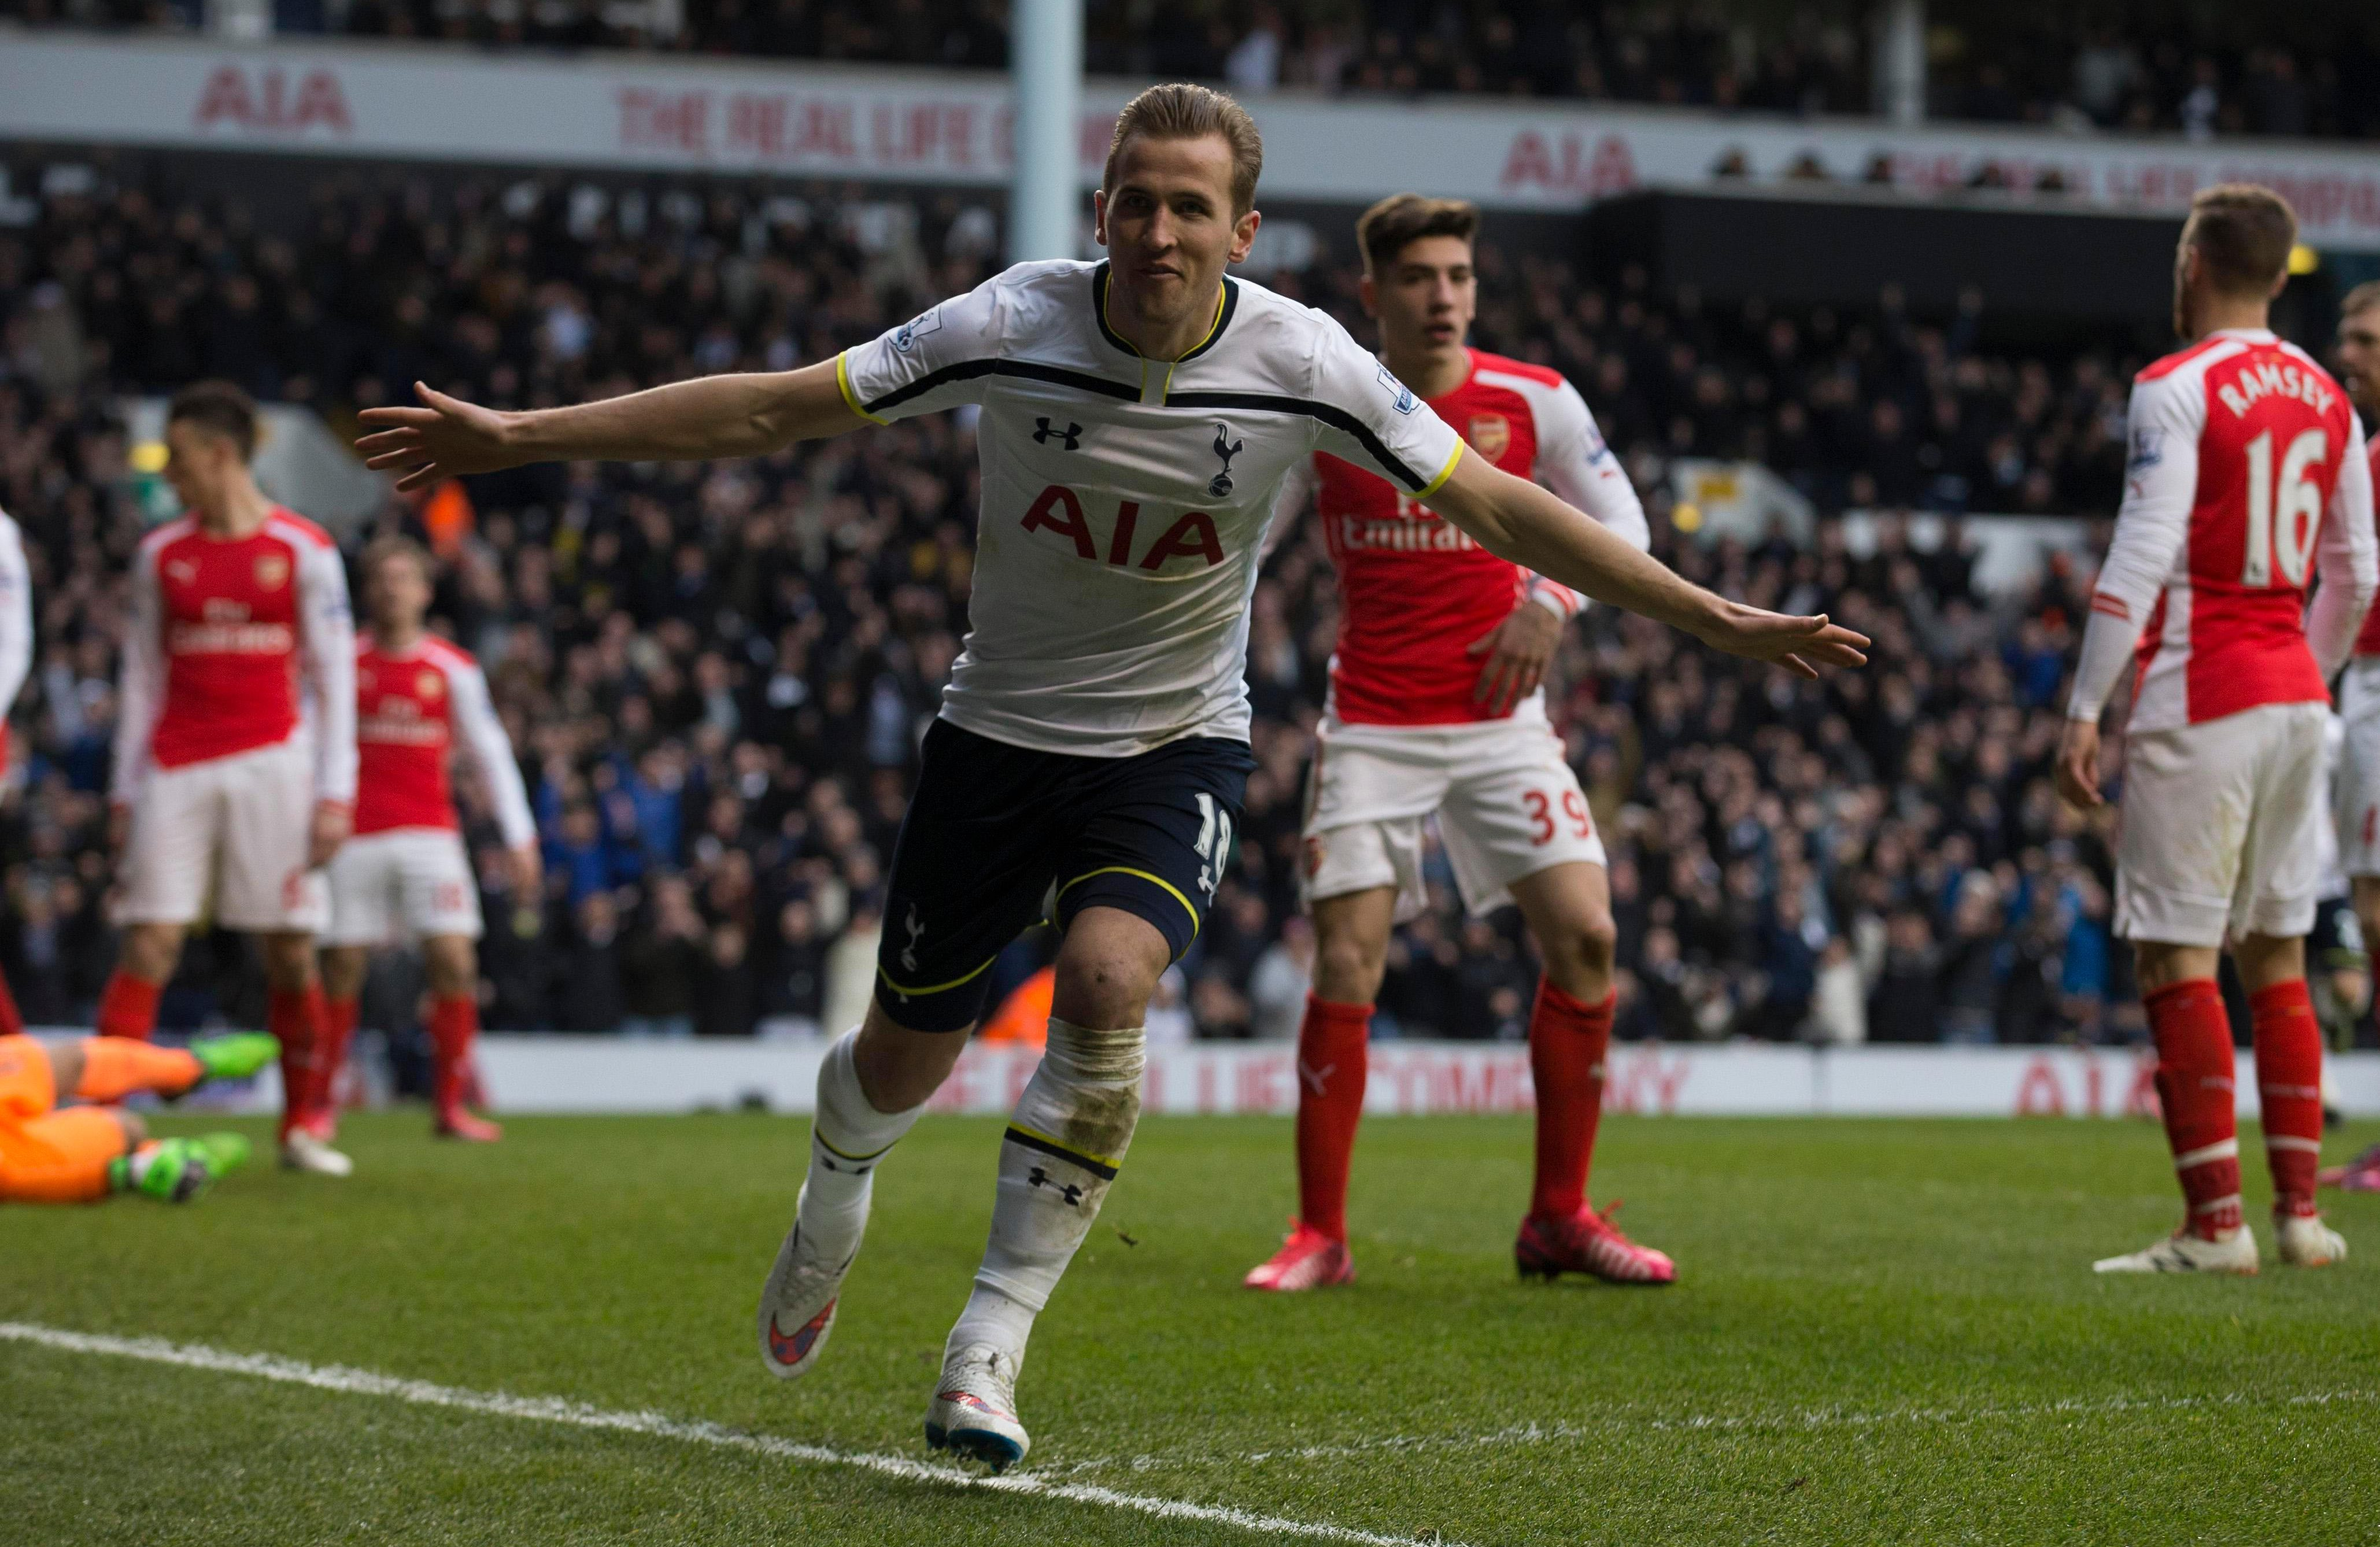 Kane scored twice against the Gunners in his first North London derby